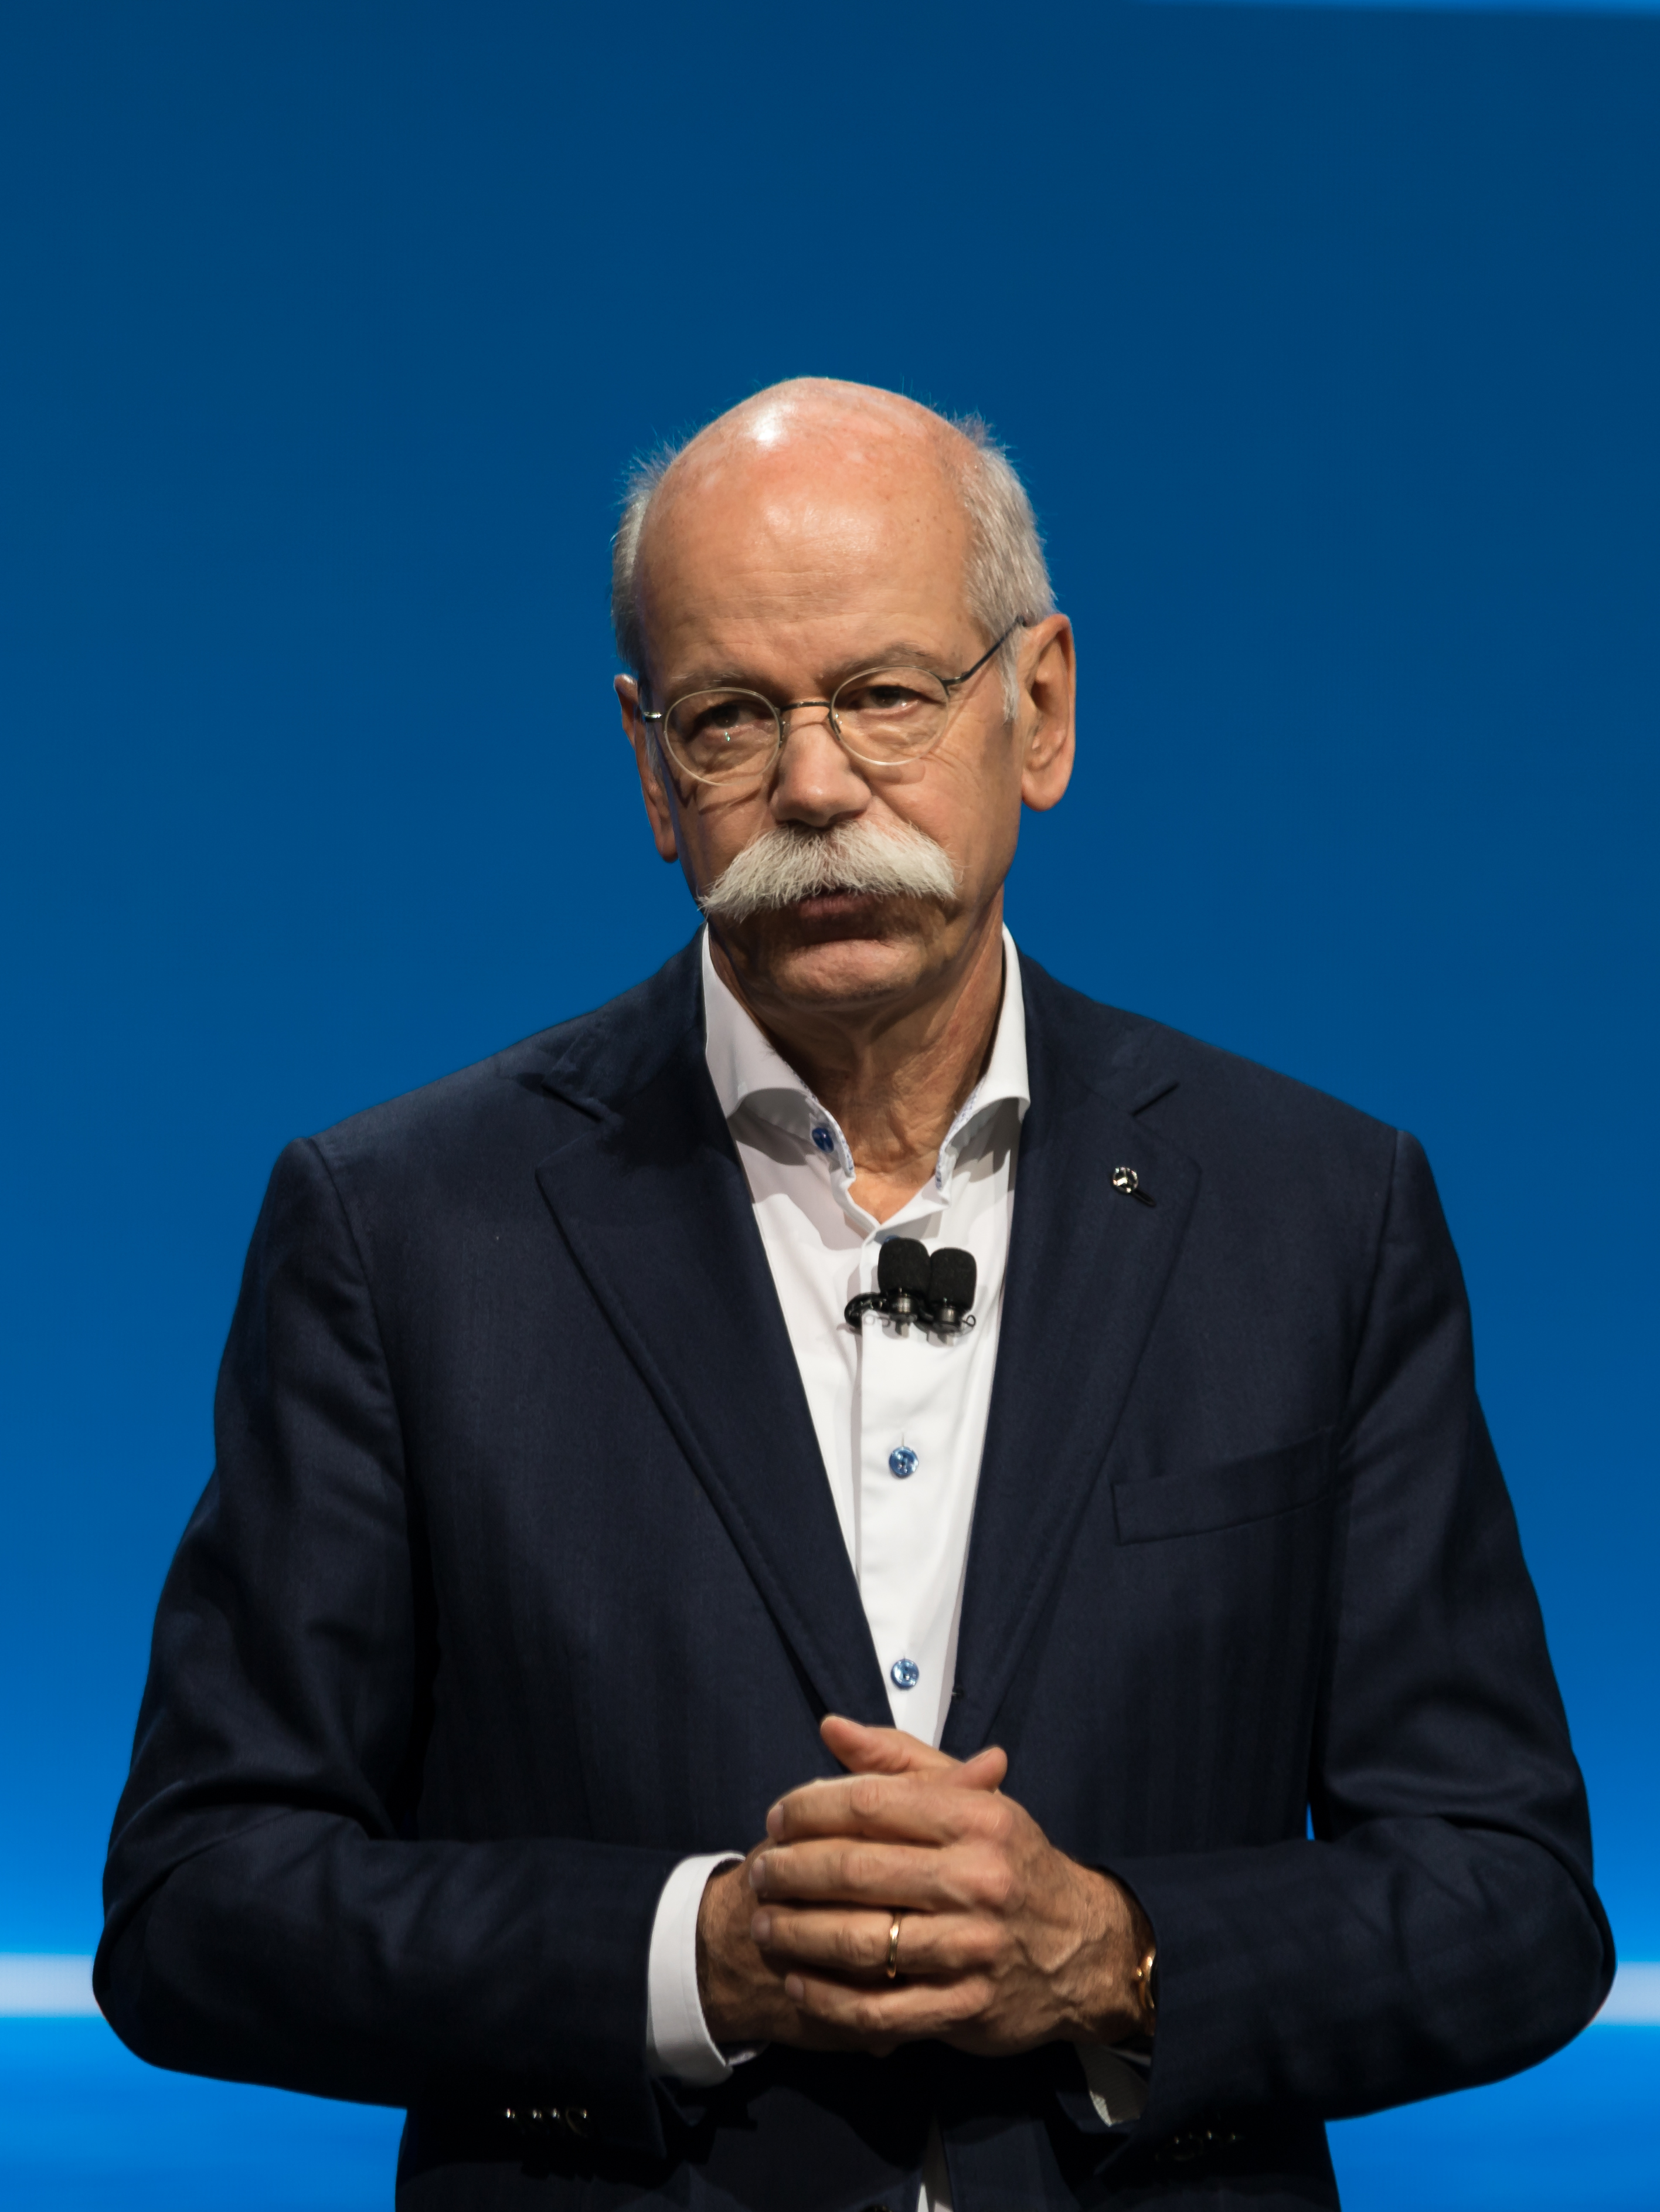 The 65-year old son of father Herbert Zetsche and mother(?) Dieter Zetsche in 2018 photo. Dieter Zetsche earned a  million dollar salary - leaving the net worth at 4000 million in 2018